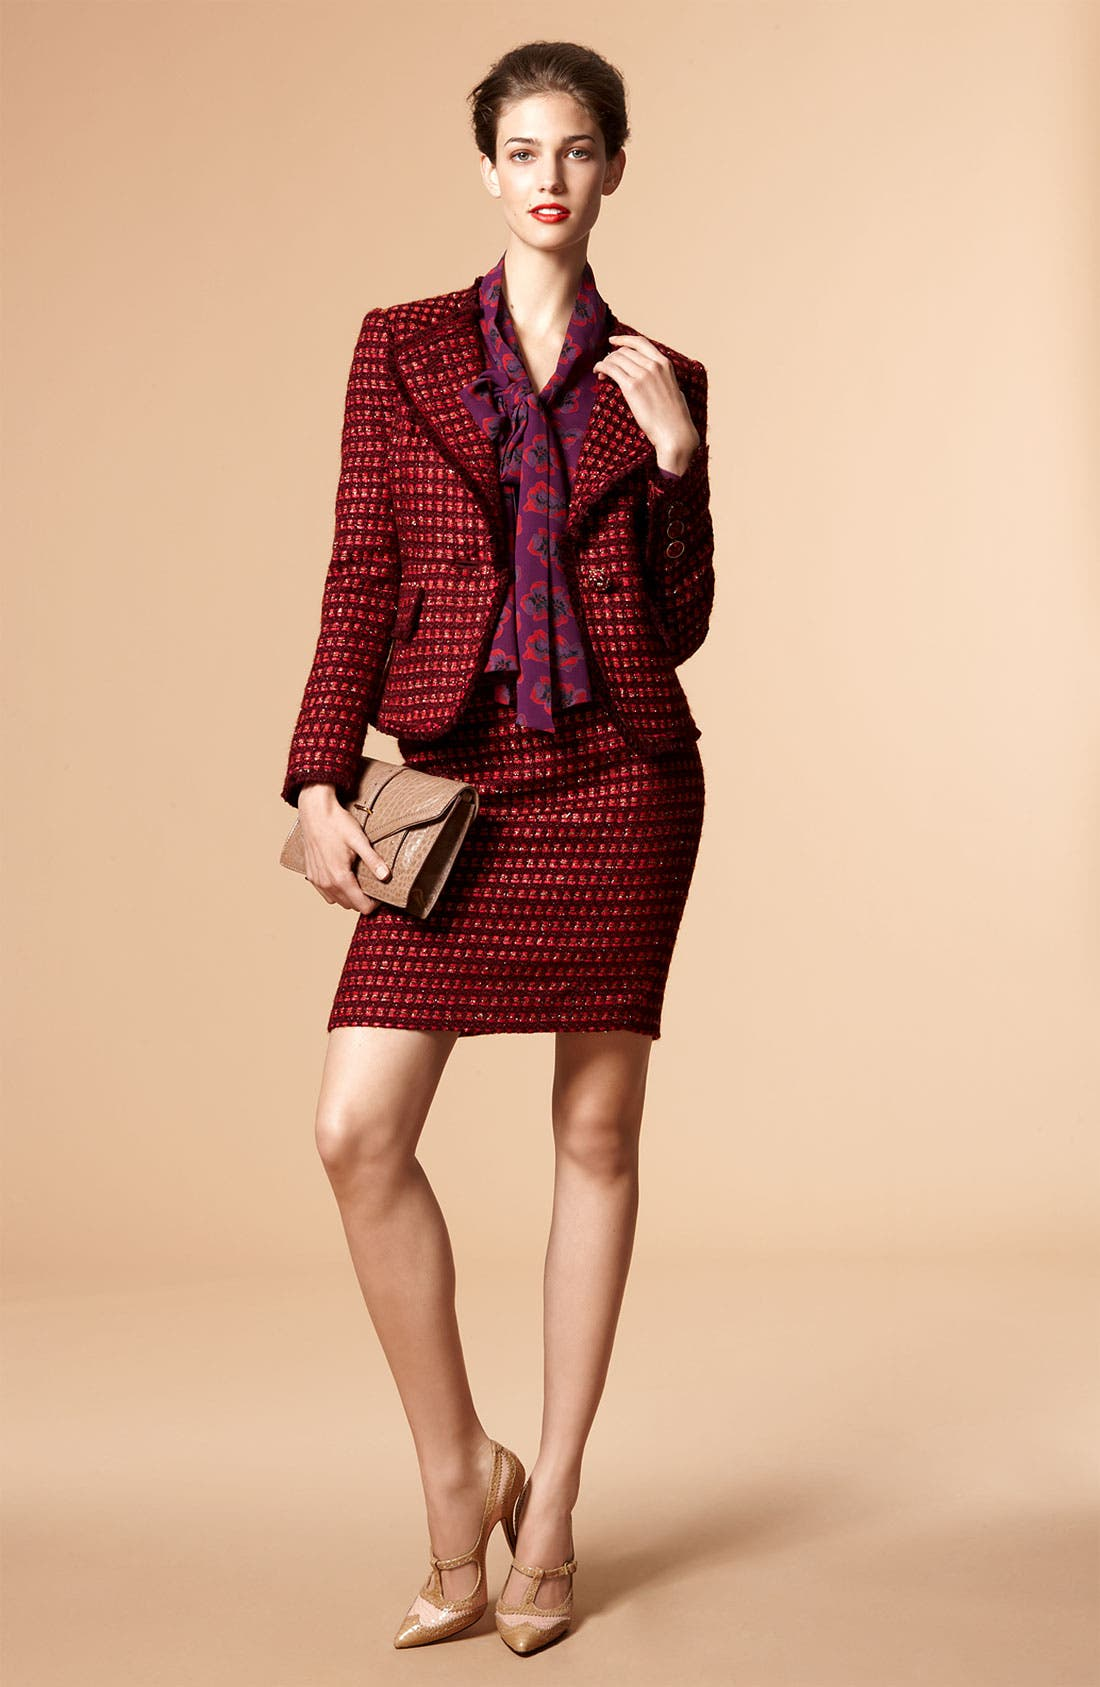 Main Image - Tory Burch Jacket, Blouse & Skirt